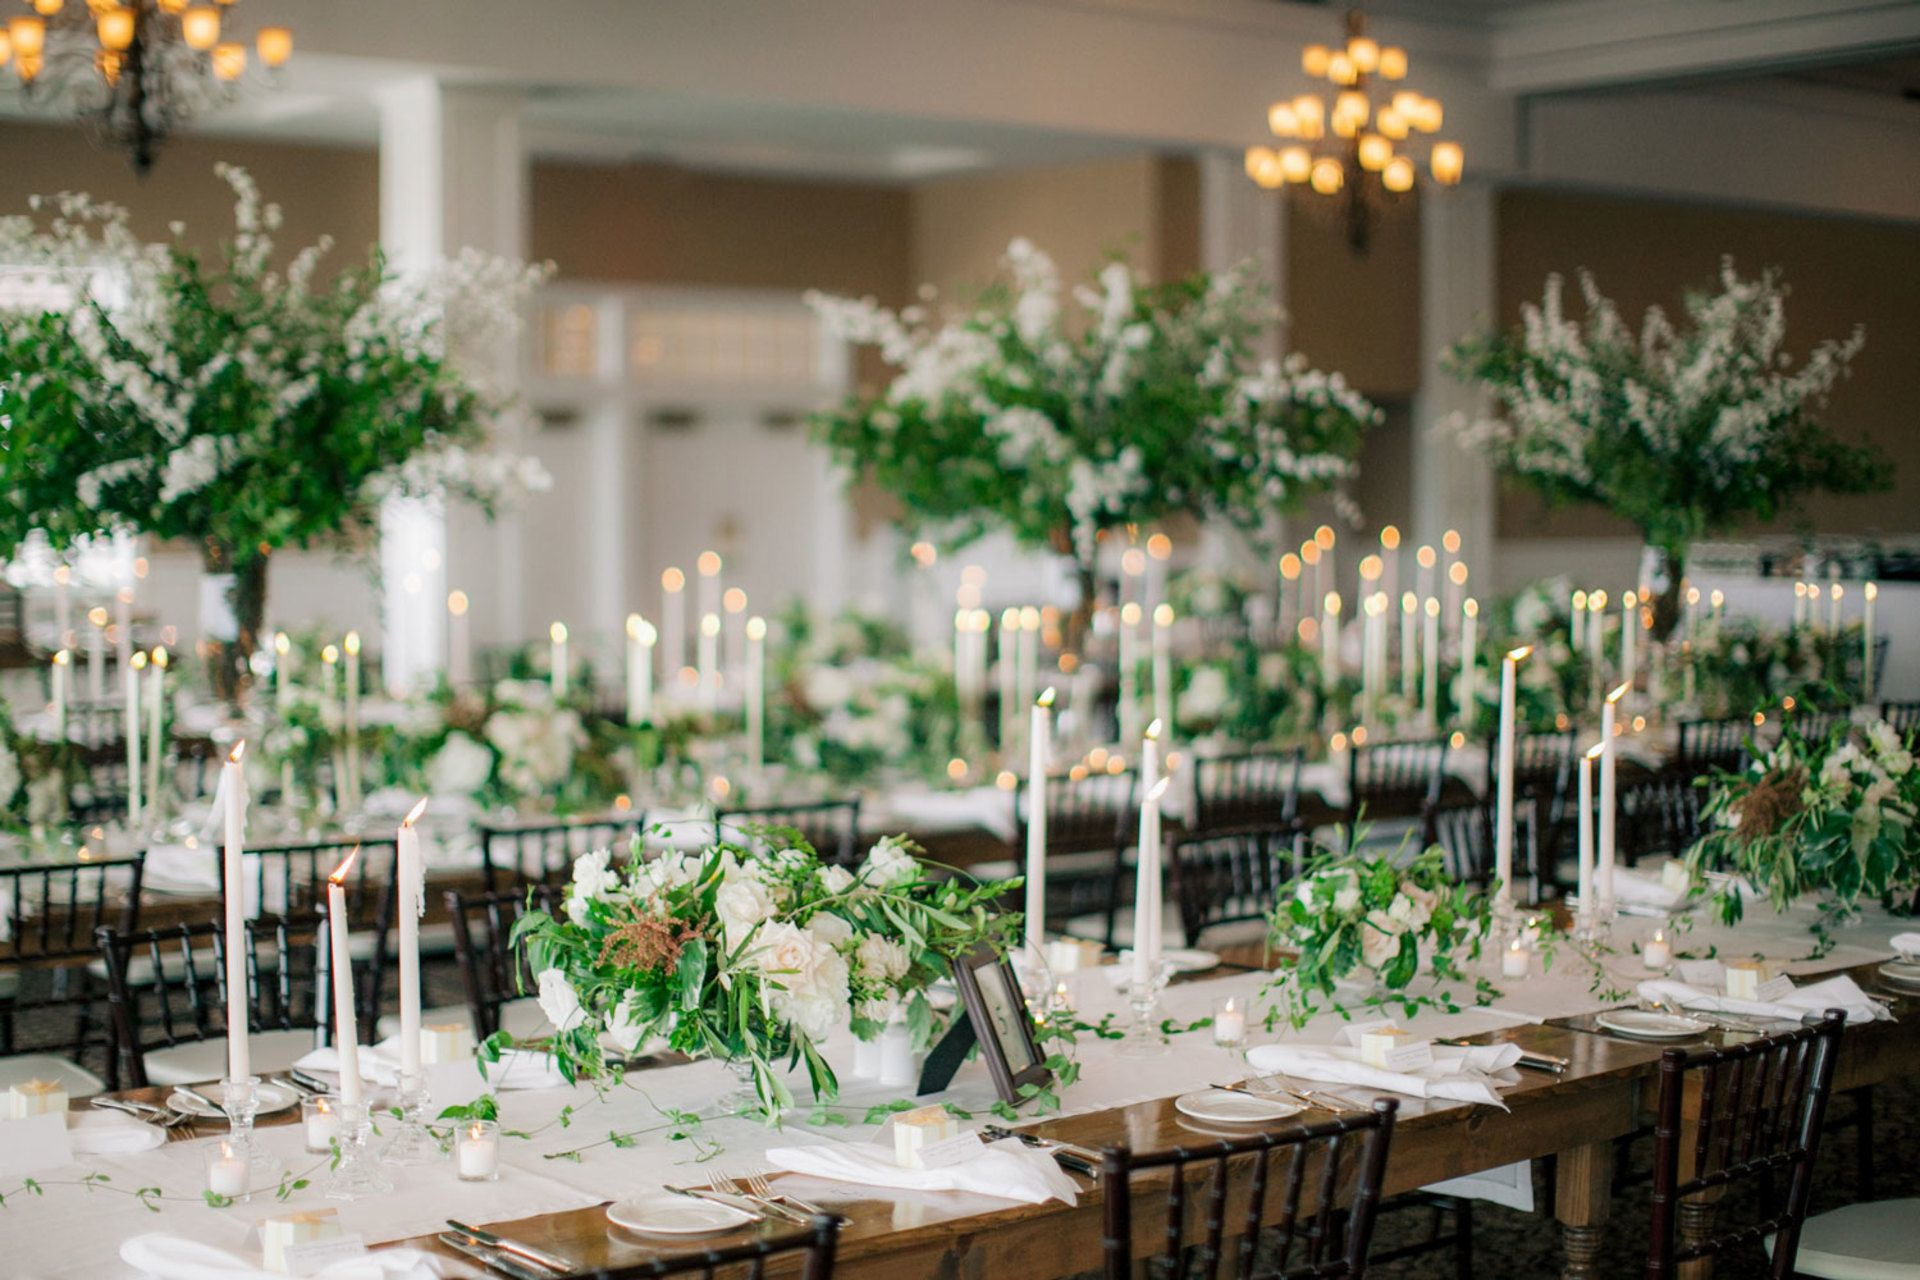 La Tavola Fine Linen Rental: Hemstitch White Table Runner and Napkins | Photography: Clane Gessel Photography, Event Planning: A Touch of Whimsy Events, Florals: BLOOM Floral Design